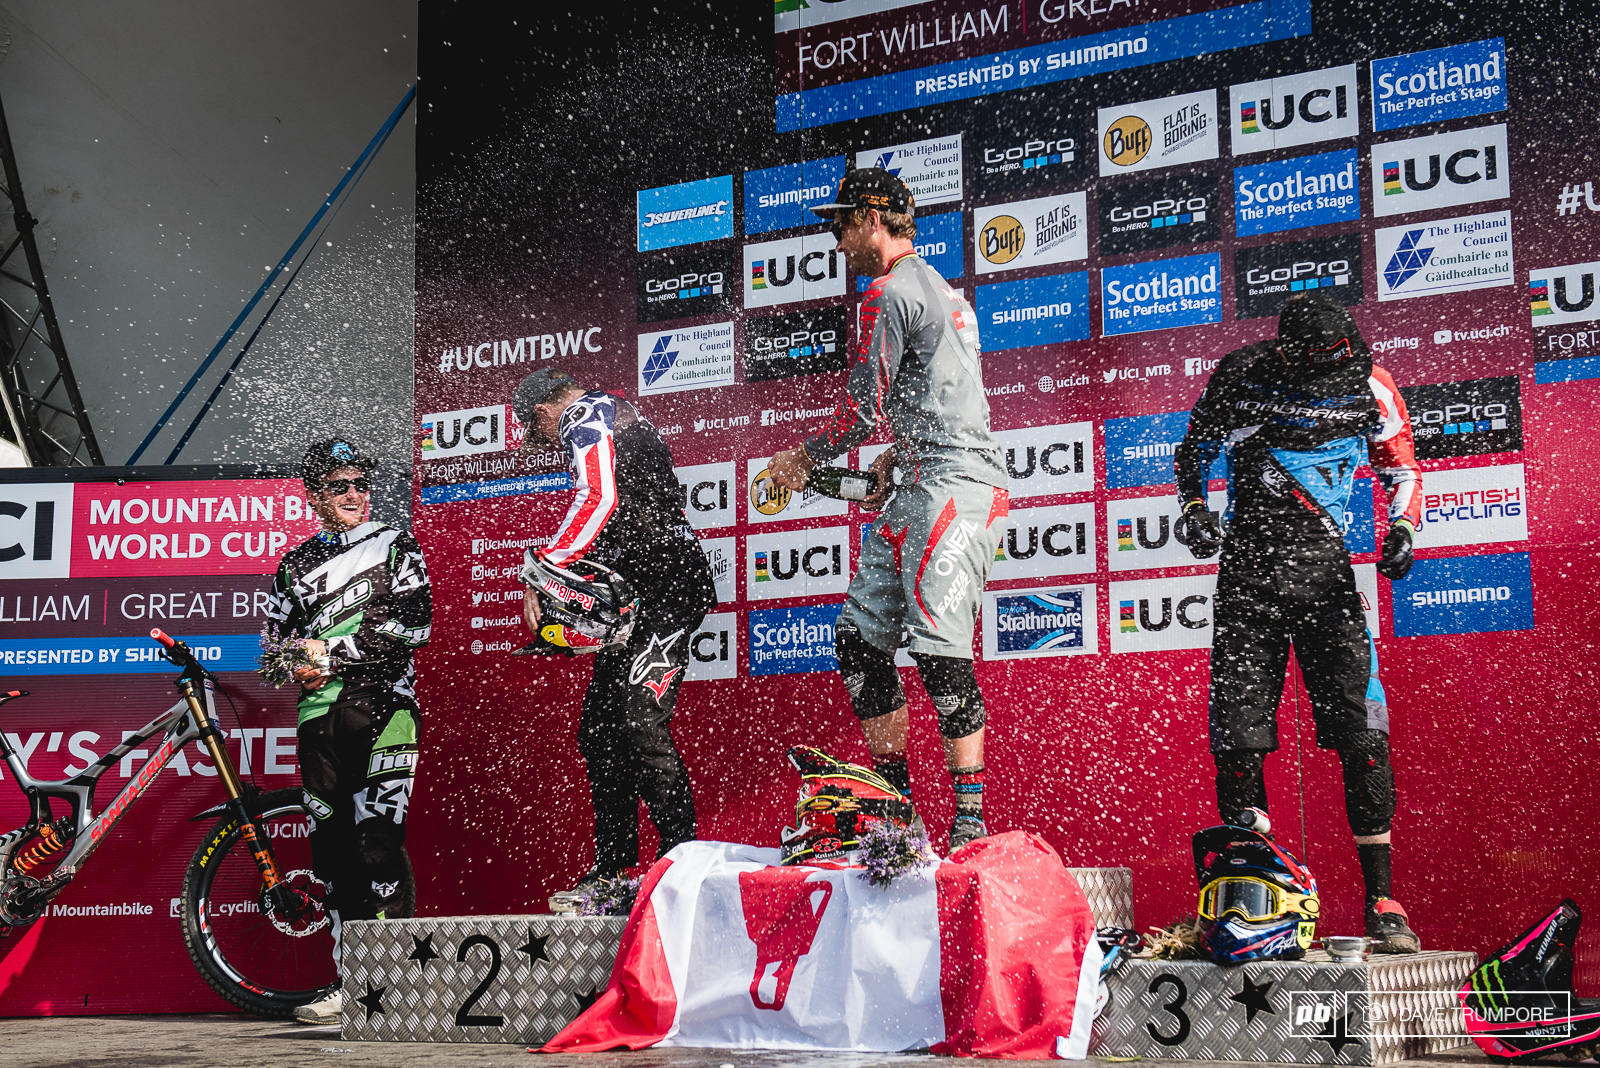 Even Stevie Smith got one more taste of victory champagne today in Fort William.